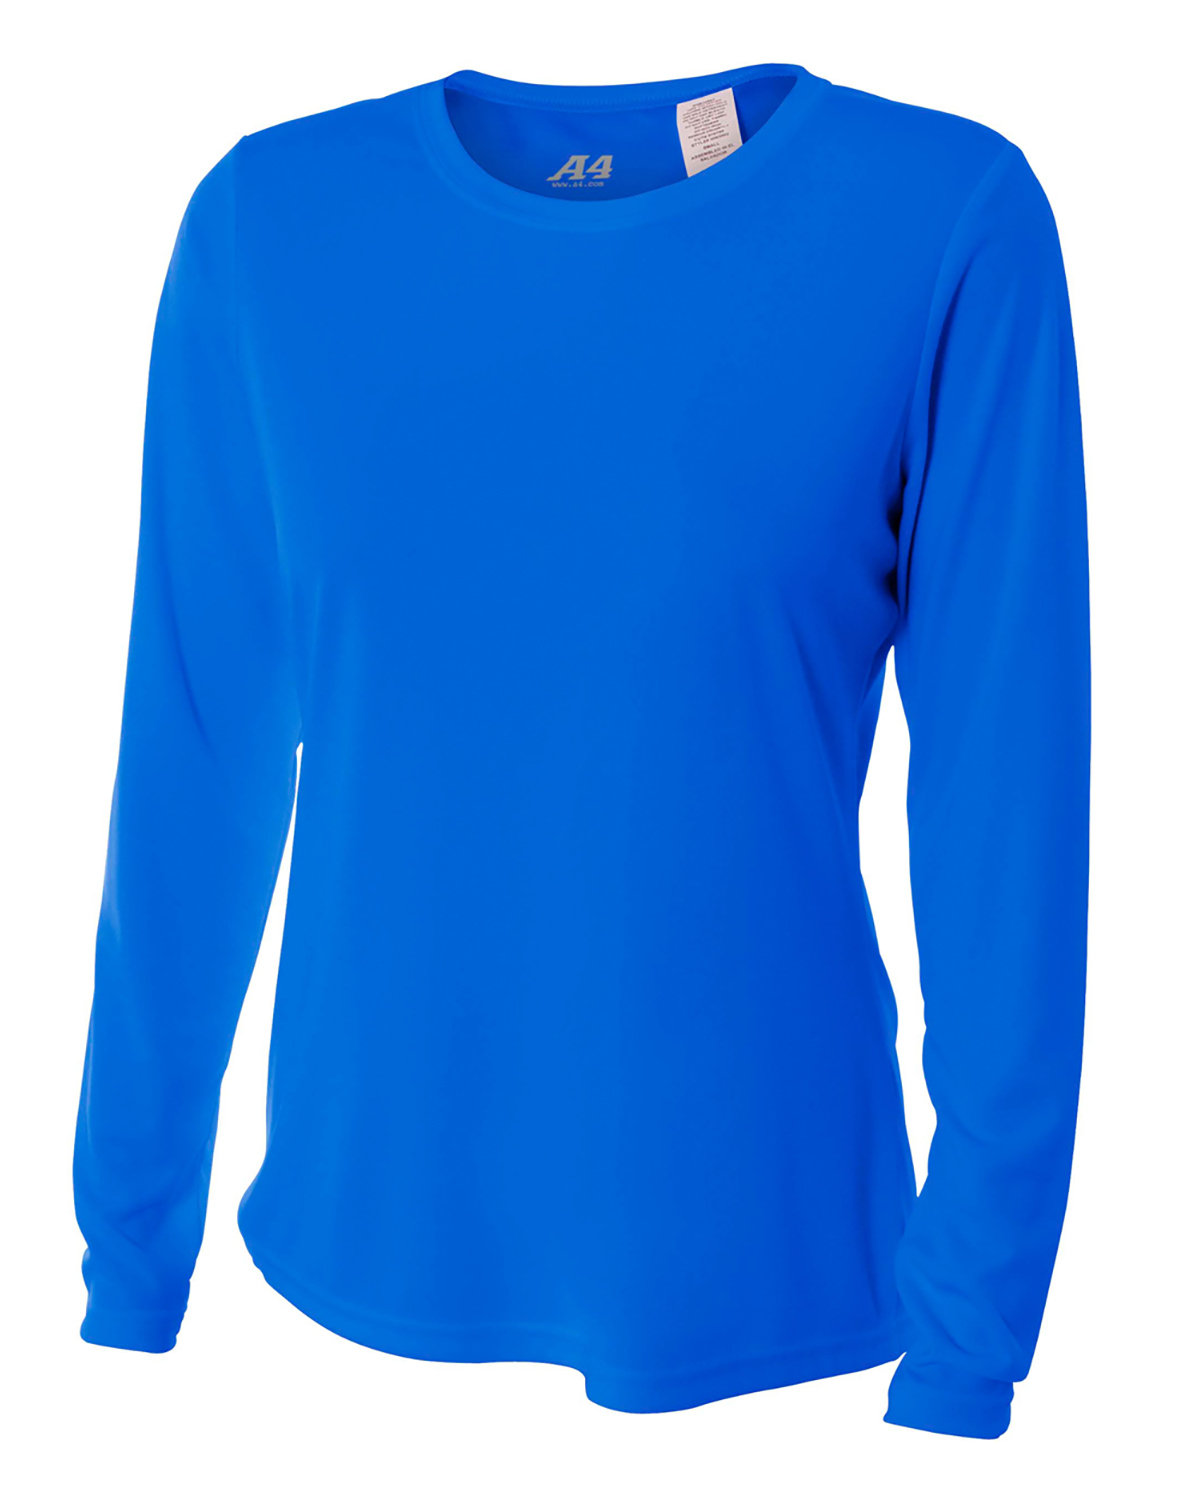 A4 Ladies' Long Sleeve Cooling Performance Crew Shirt ROYAL